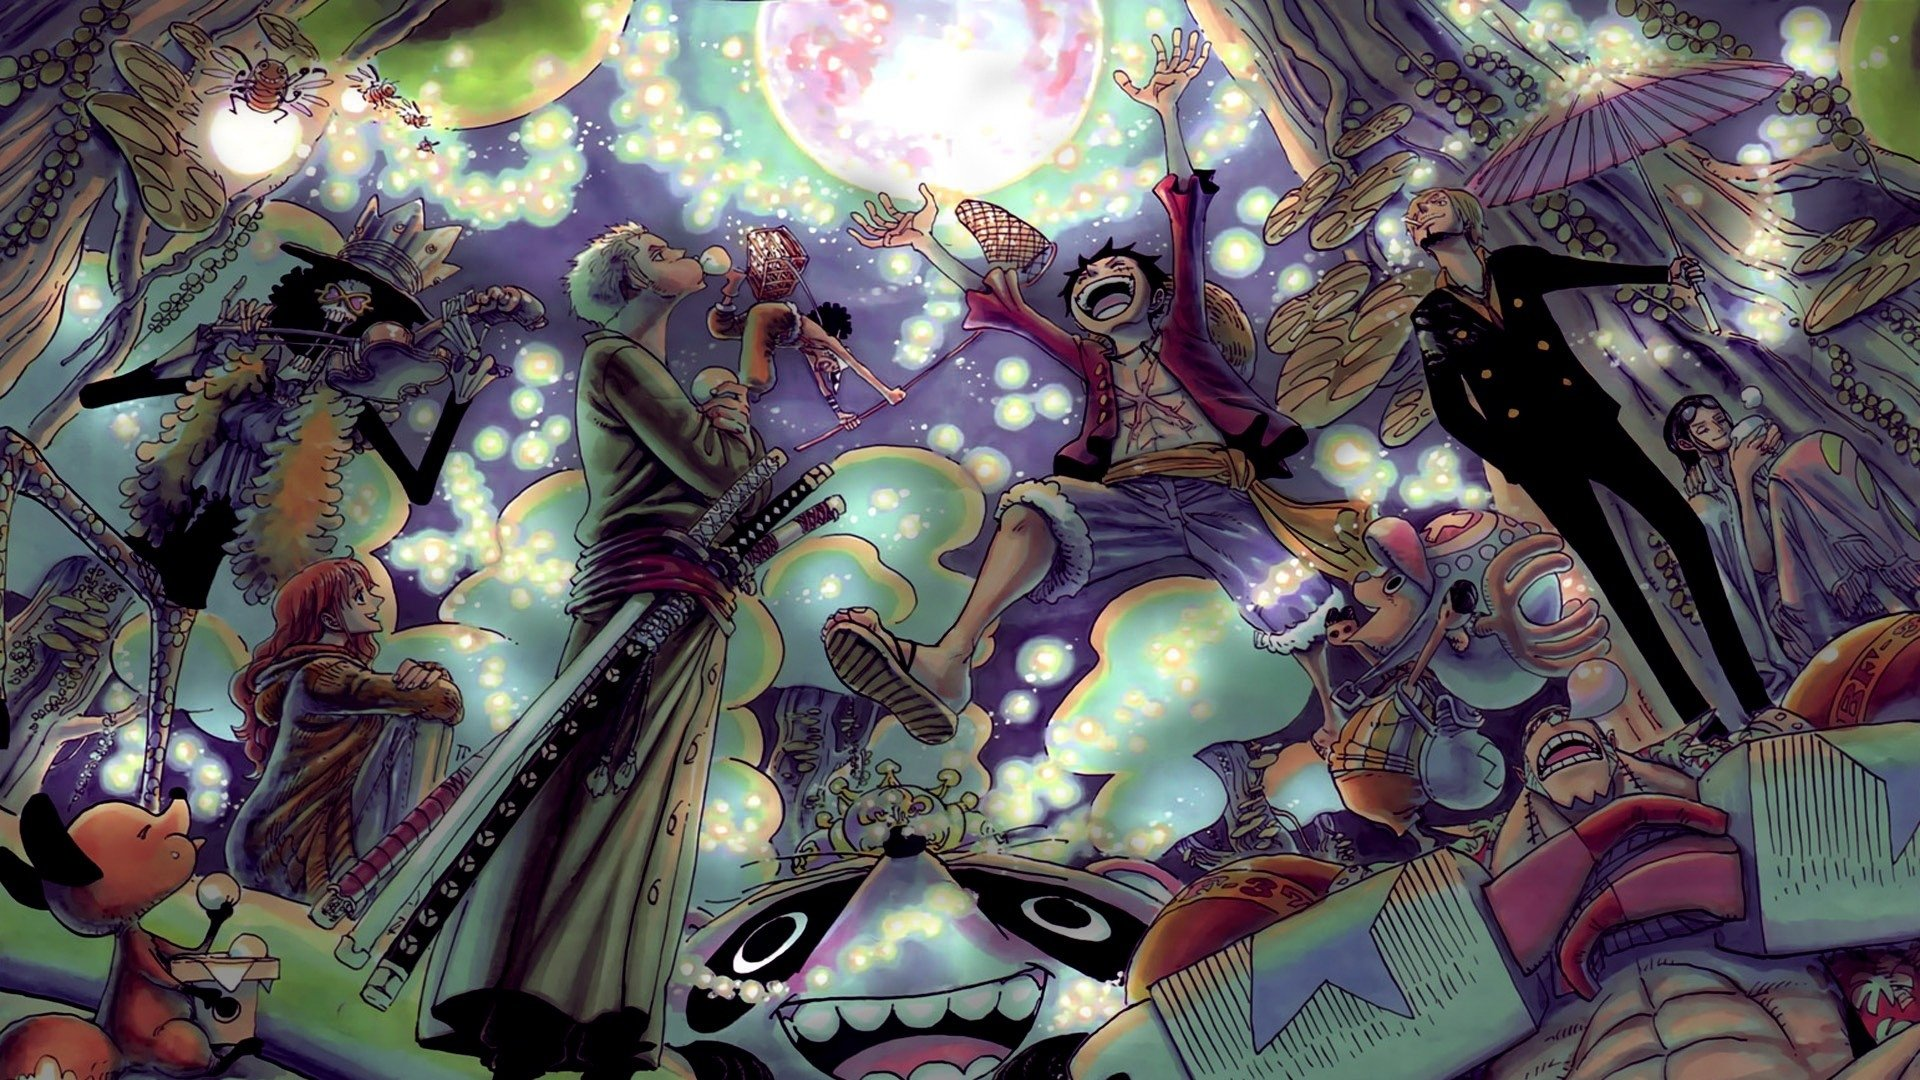 300 Sanji One Piece Hd Wallpapers Background Images Wallpaper Abyss Page 3